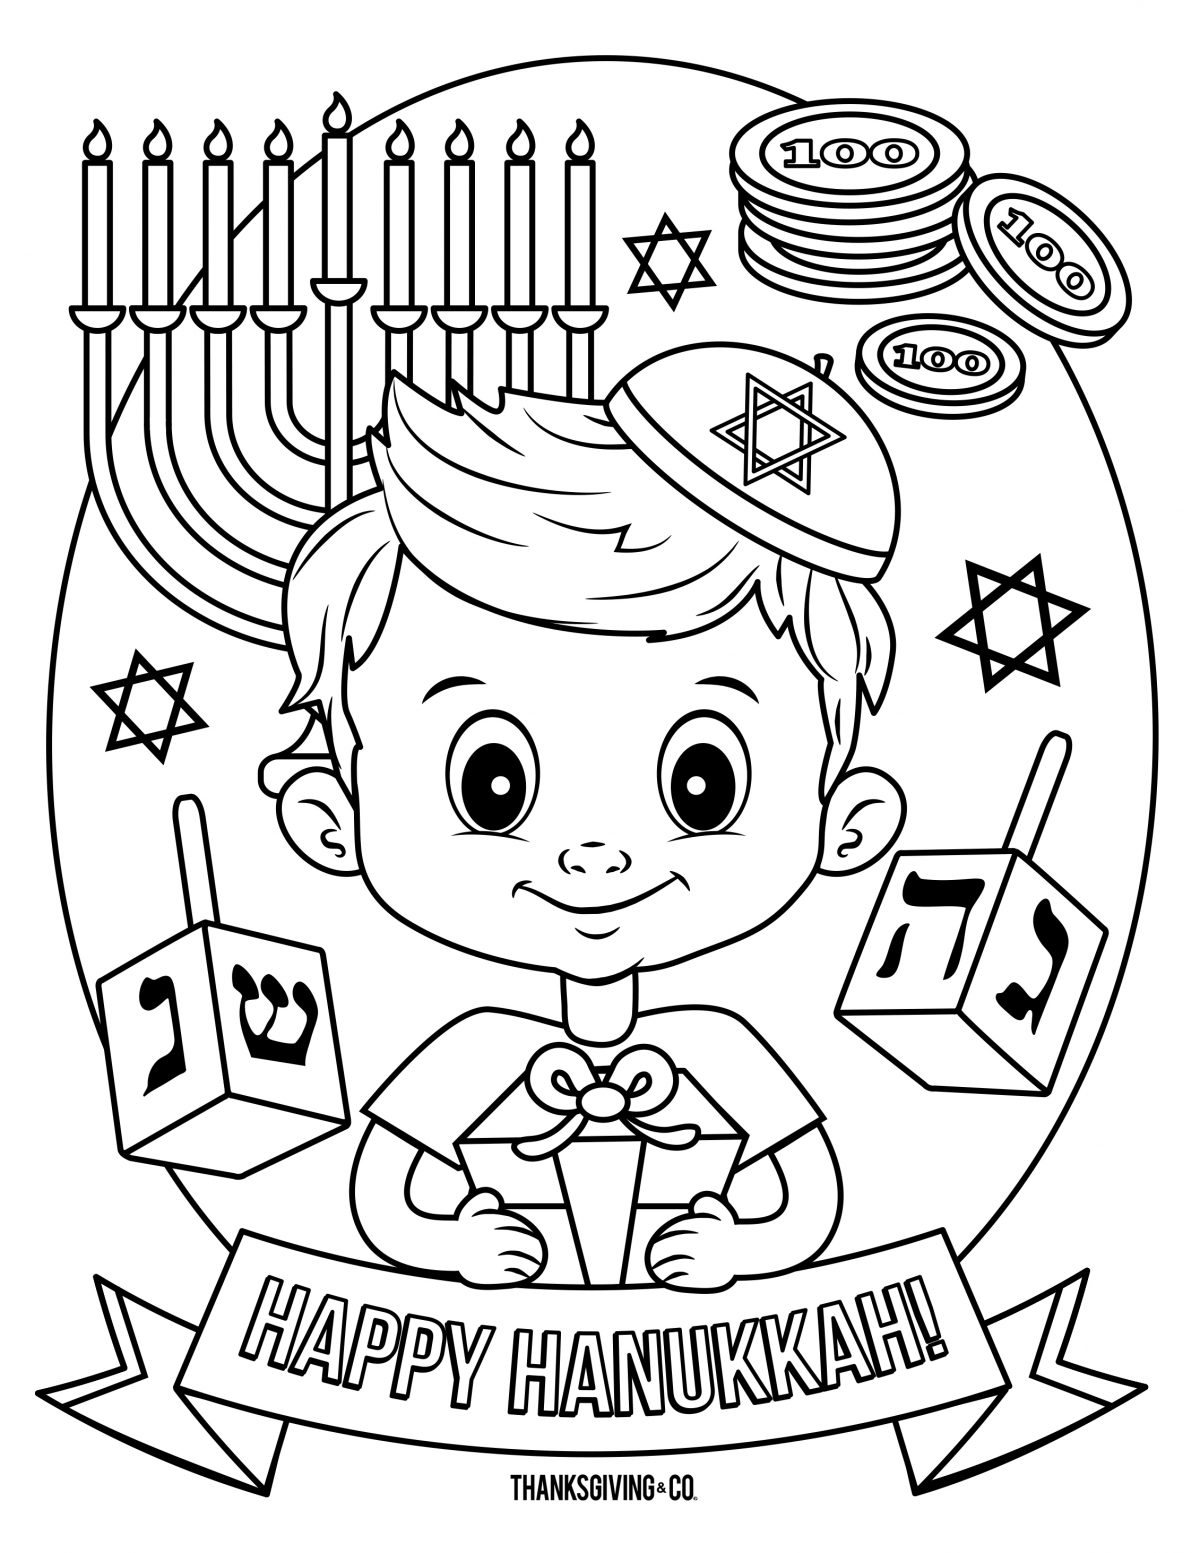 Hannukah Coloring 4